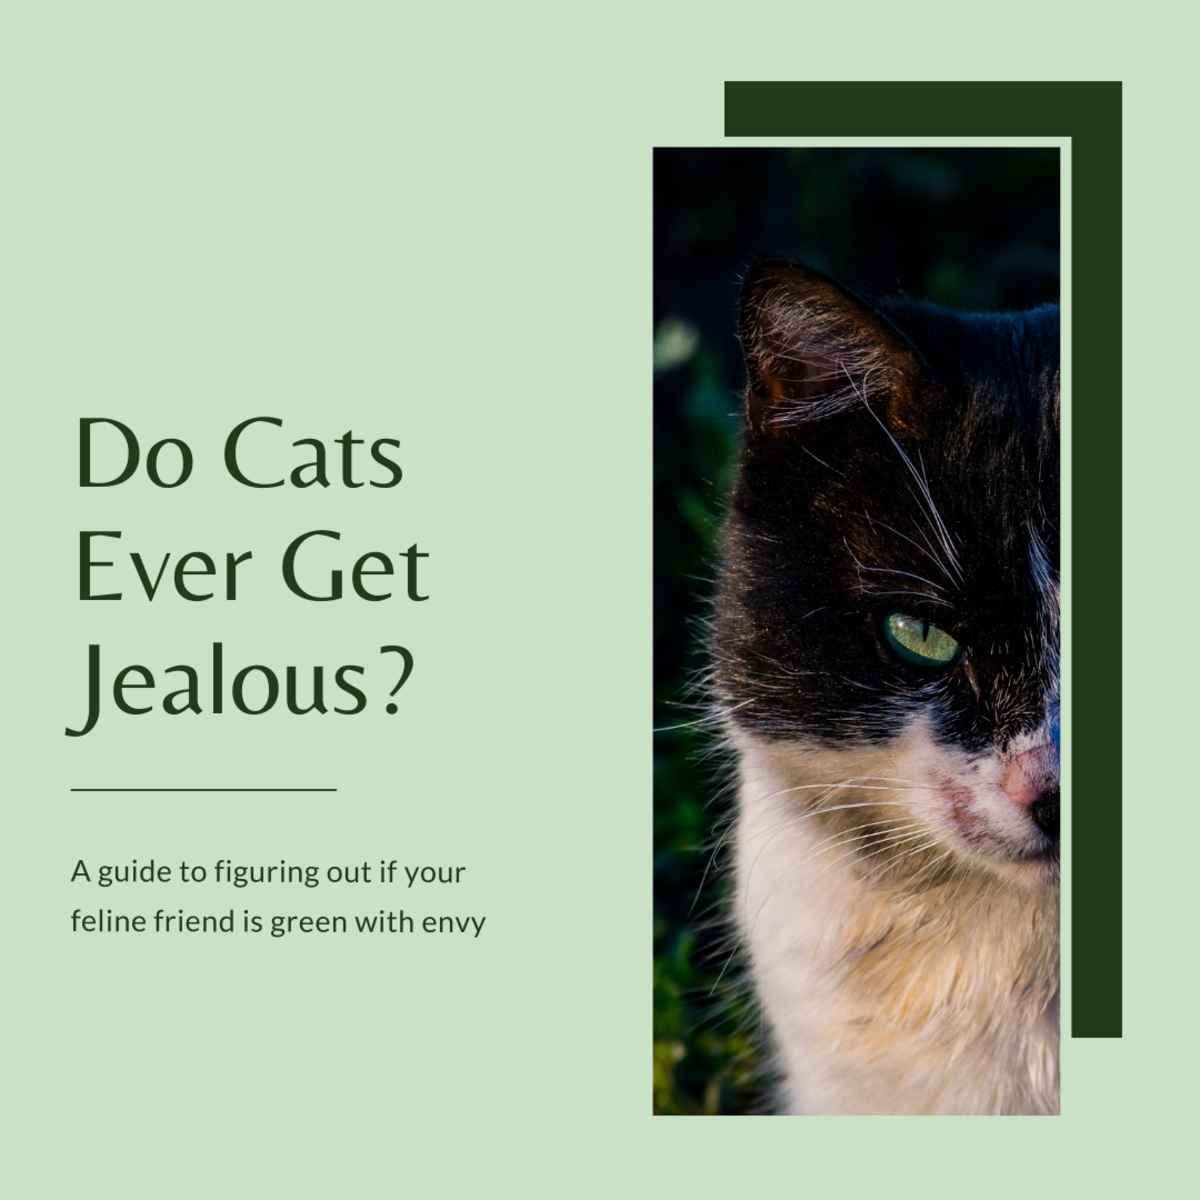 This article will help you determine if your cat is experiencing some jealousy and provide some tips on how you can help them feel more comfortable.